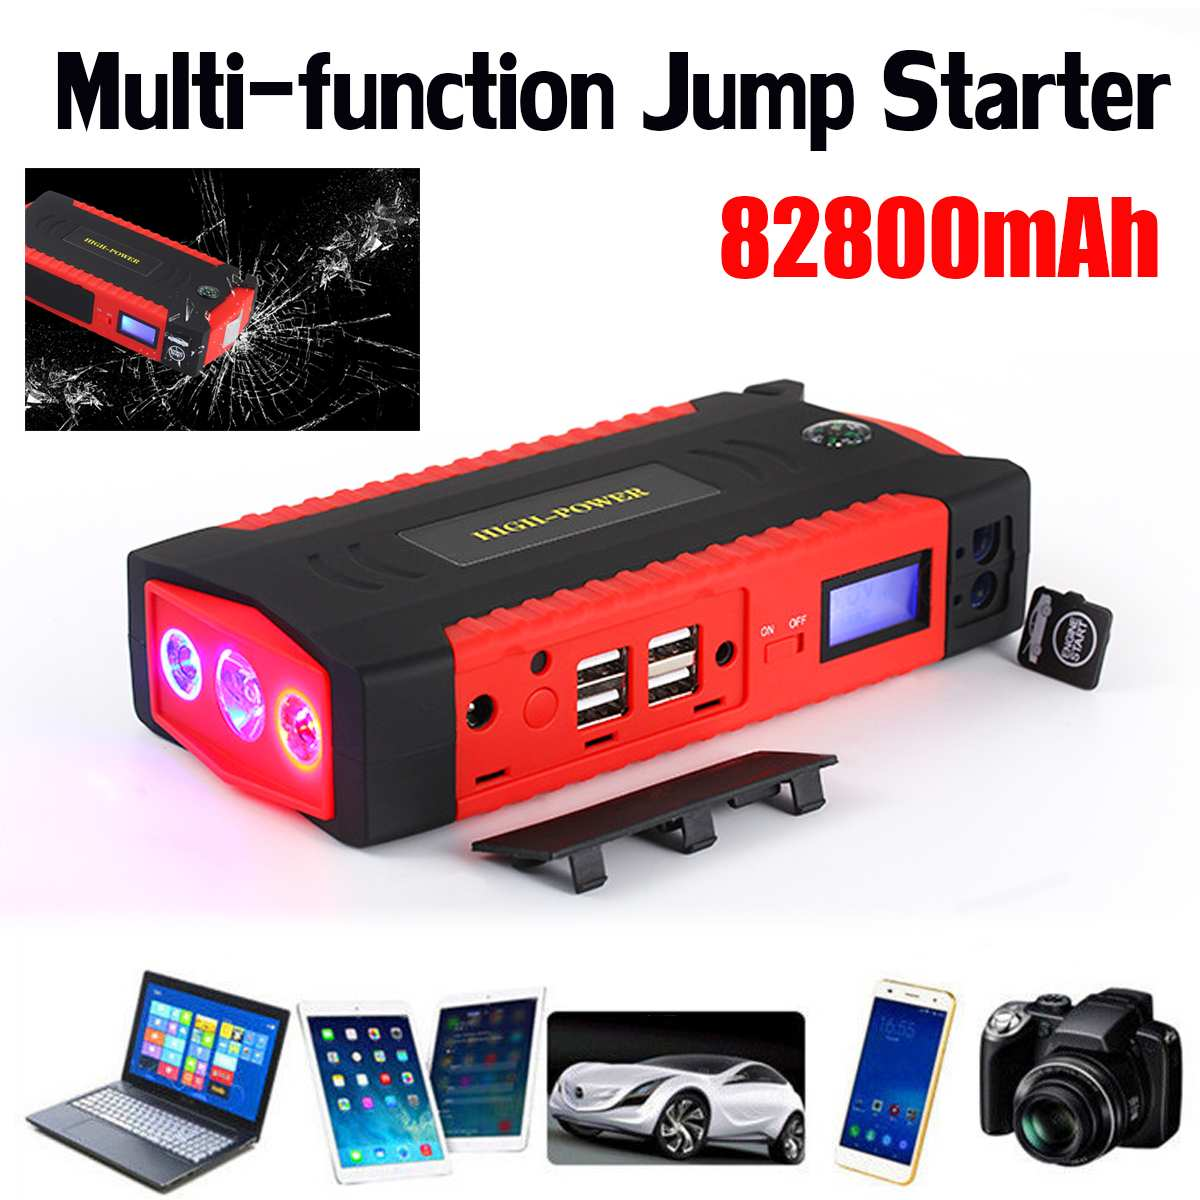 Car Jump Pack >> Us 44 98 12 Off 82800mah 4usb Car Jump Starter Multifunction Emergency Charger Battery Power Bank Pack Booster 12v Starting Device Waterproof In